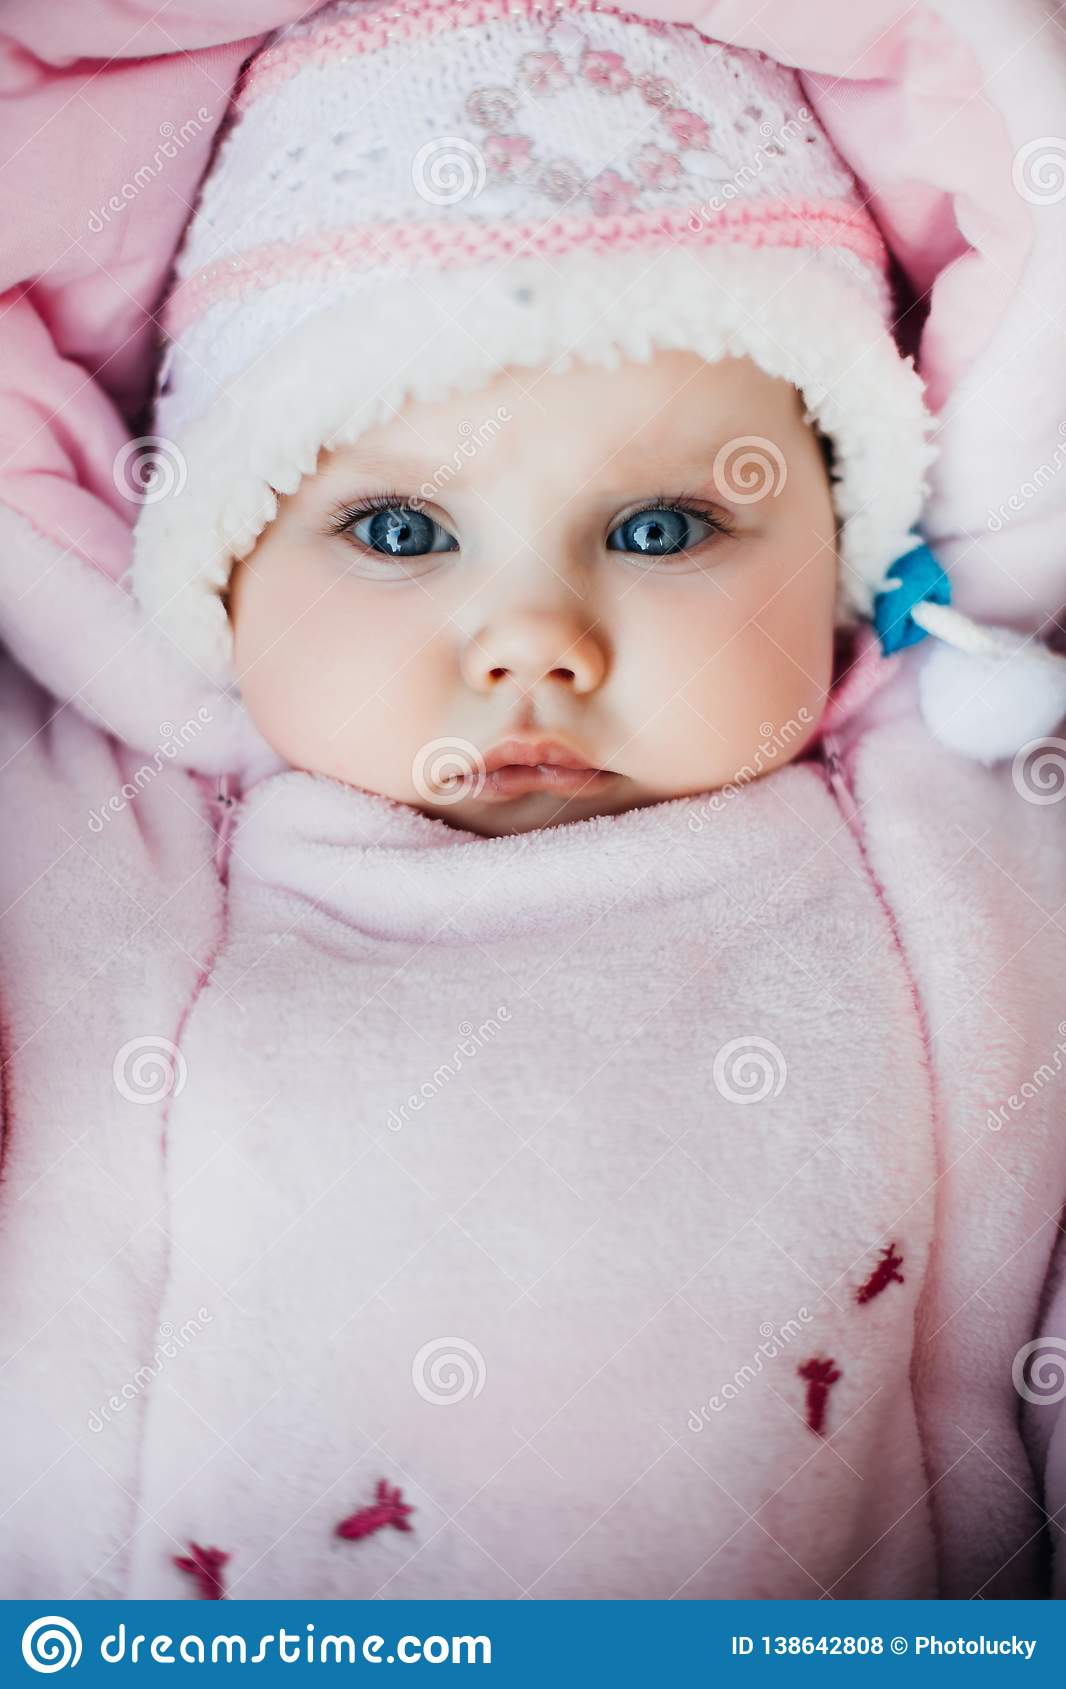 Newborn Babies With Blue Eyes Newborn Baby With Blue Eyes Looking At Camera Stock Photo